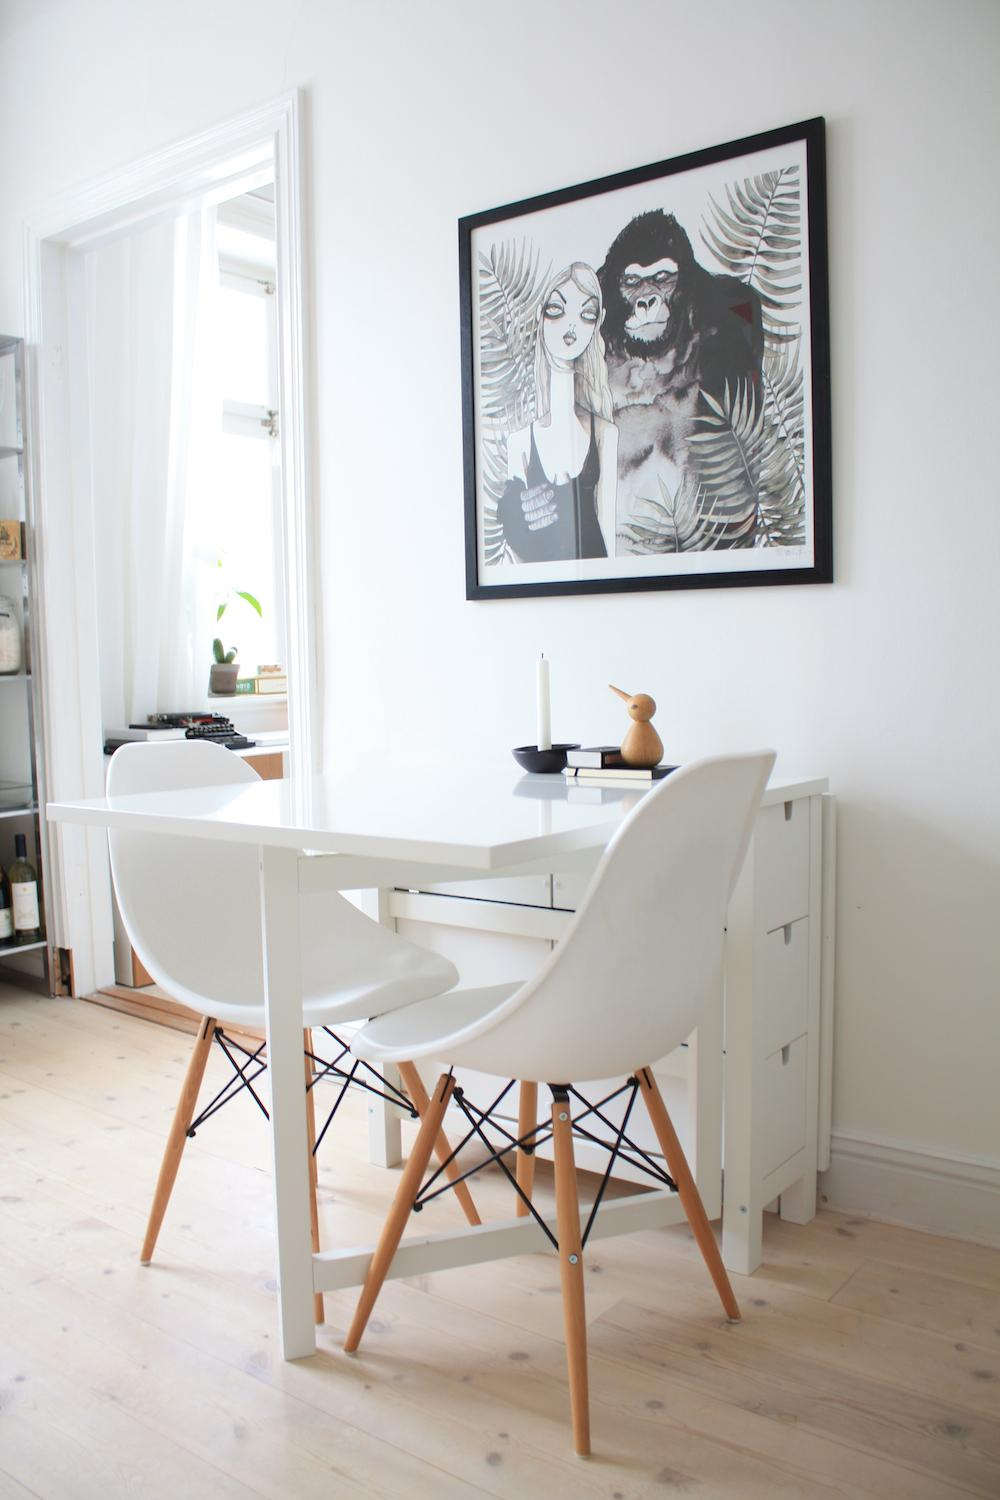 Mesa Norden Ikea Brilliant Uses For Norden Gateleg Table That Will Surprise You